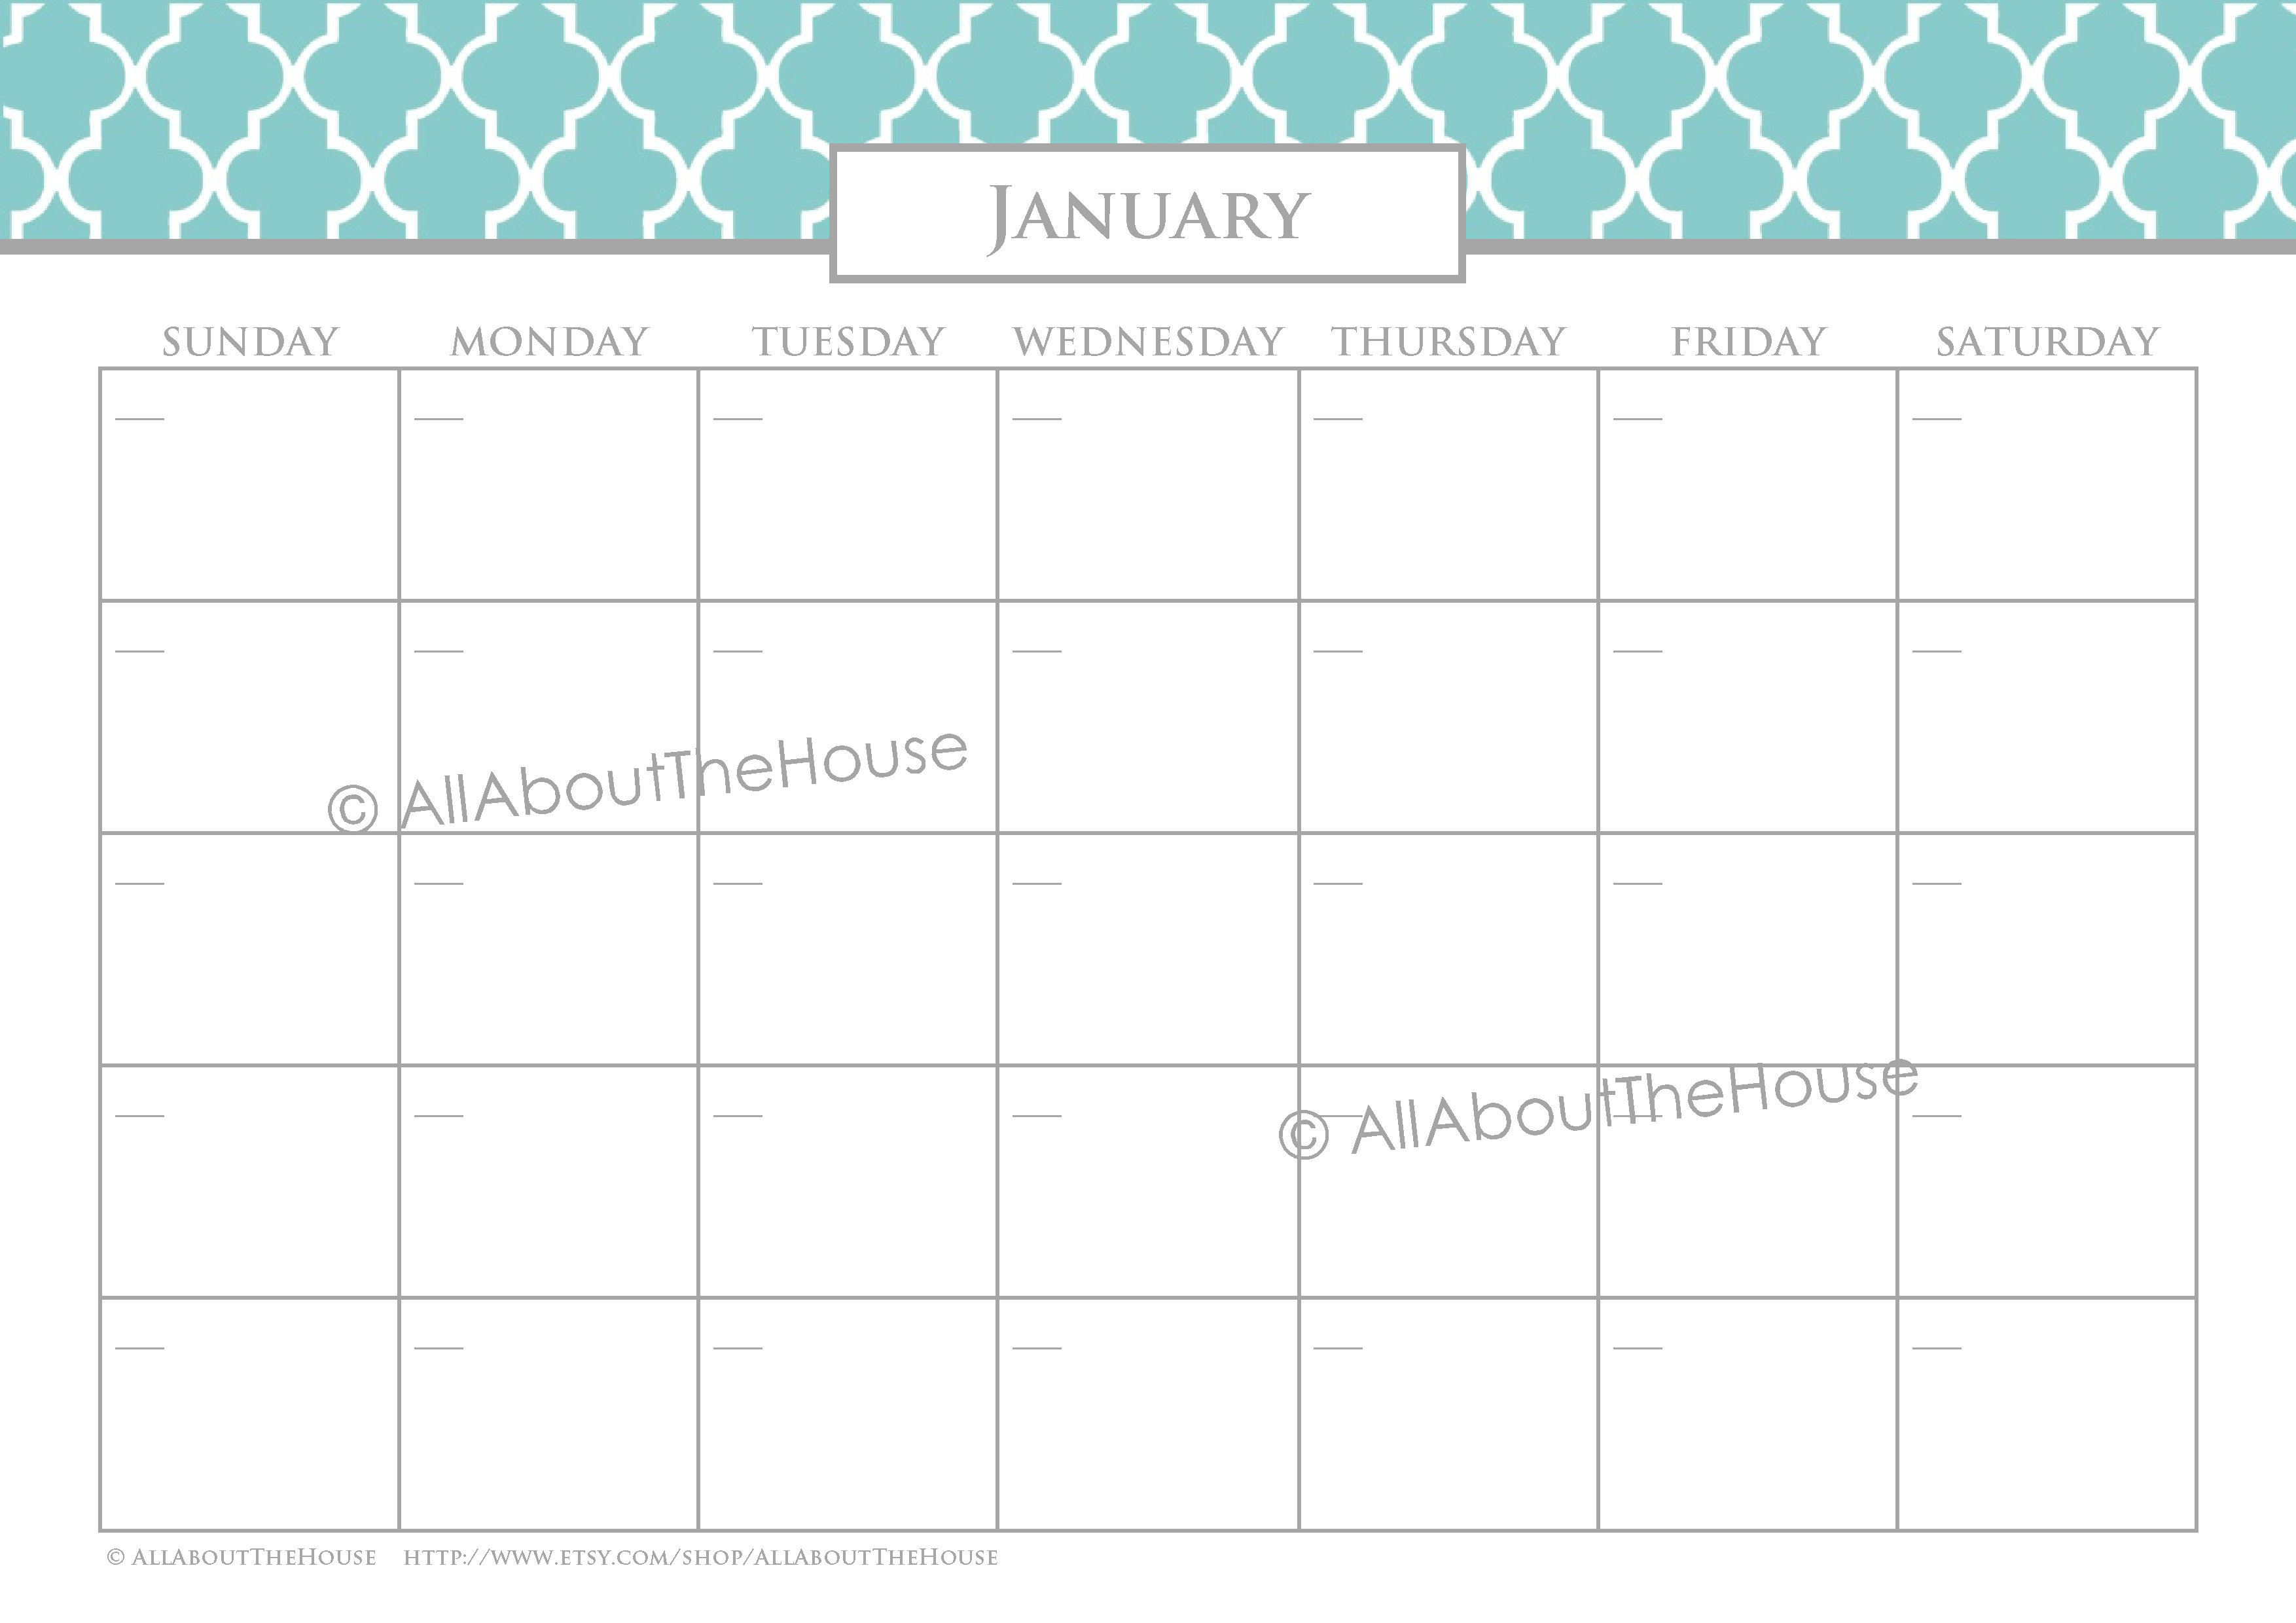 12 Monthly Meal Planners - Quatrefoil, blue, grey